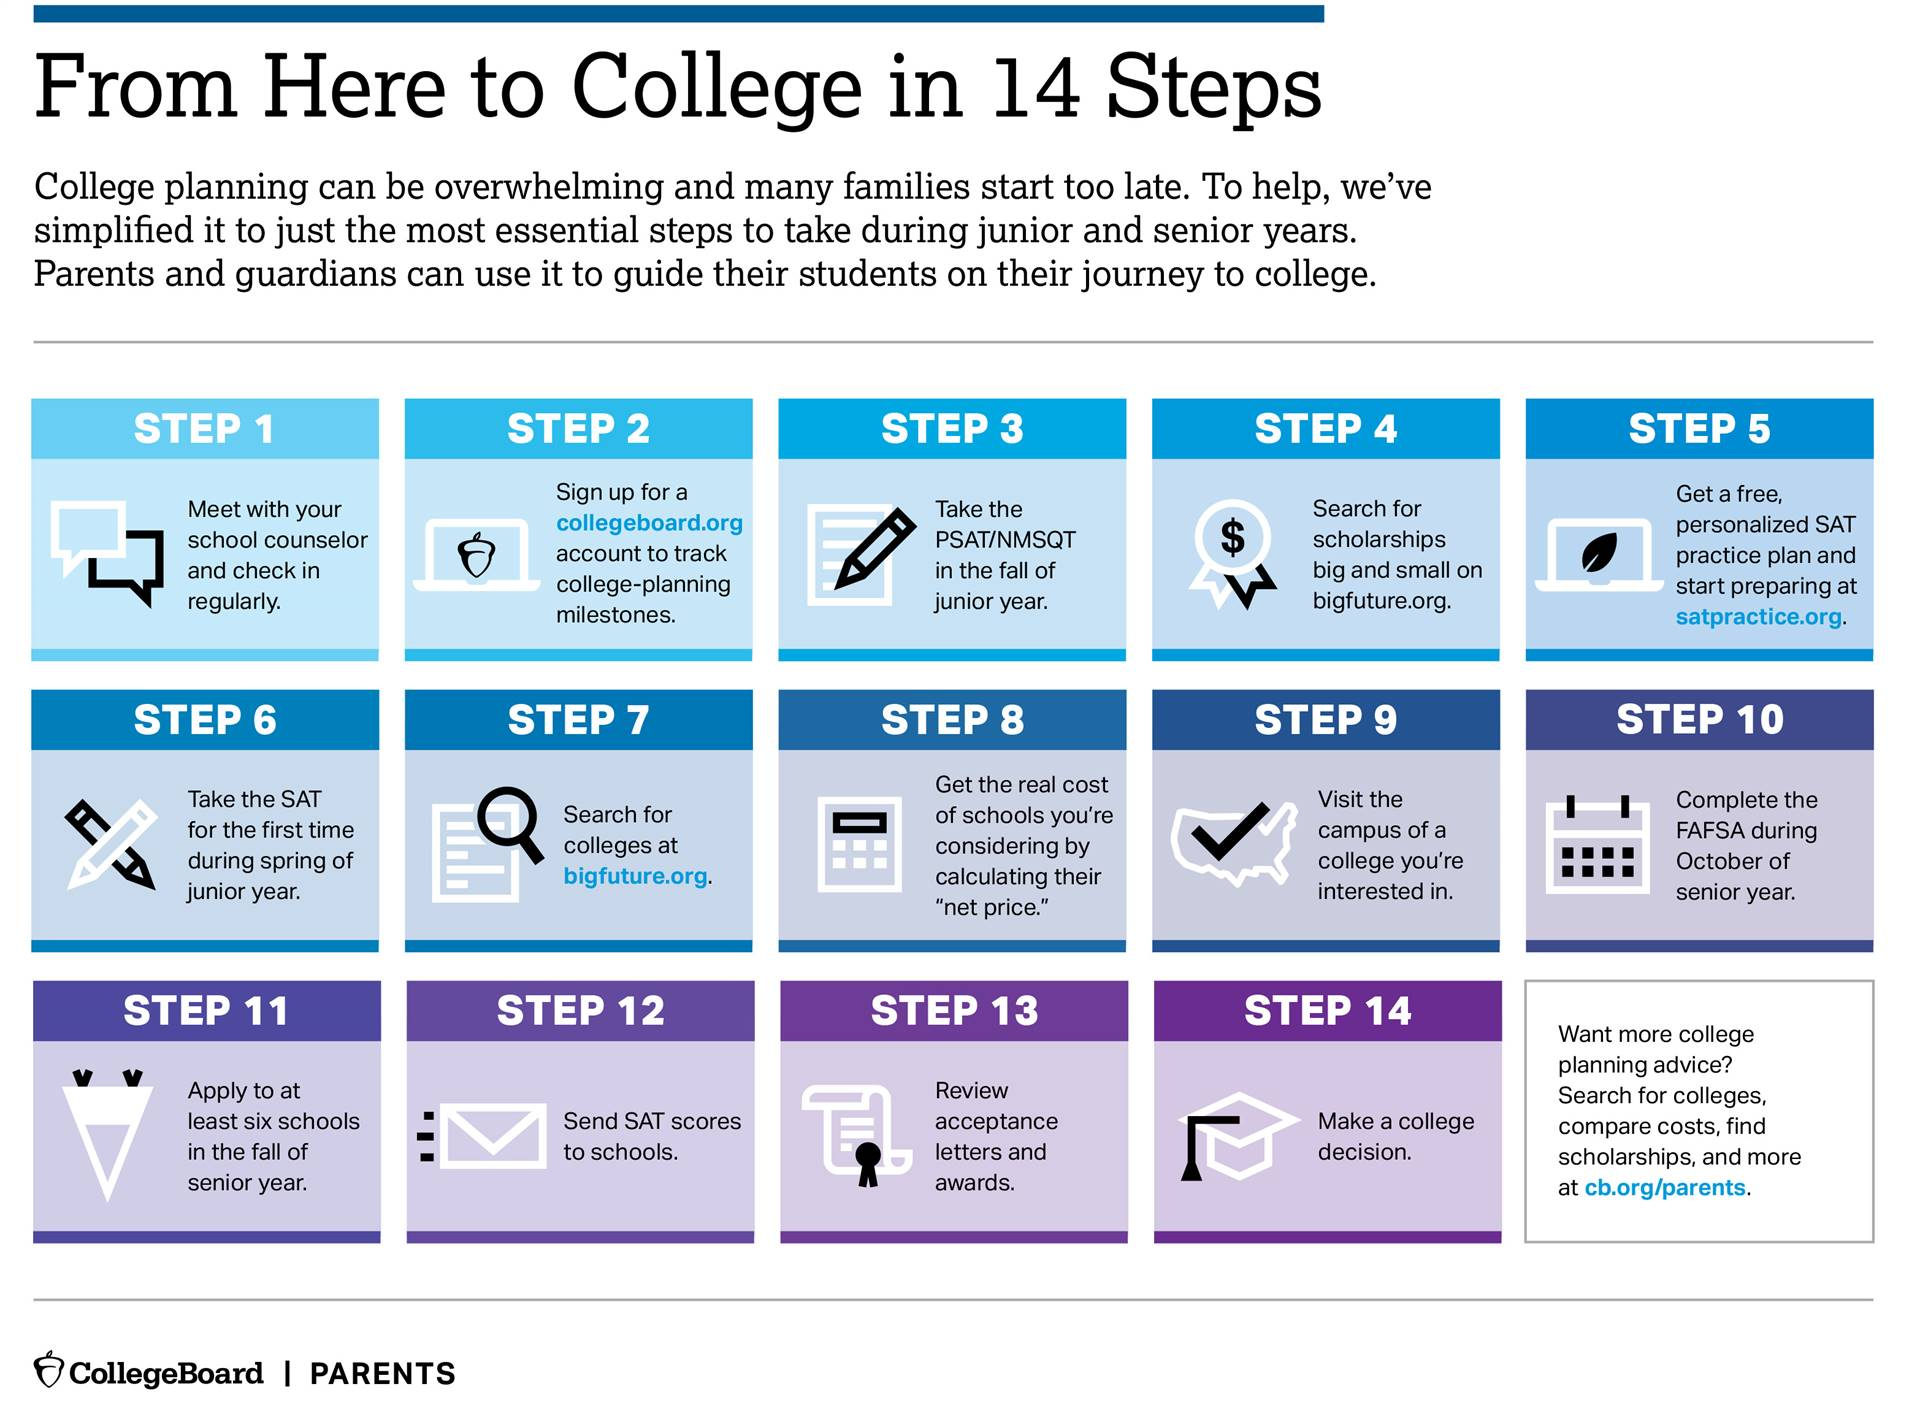 From here to college in 14 steps